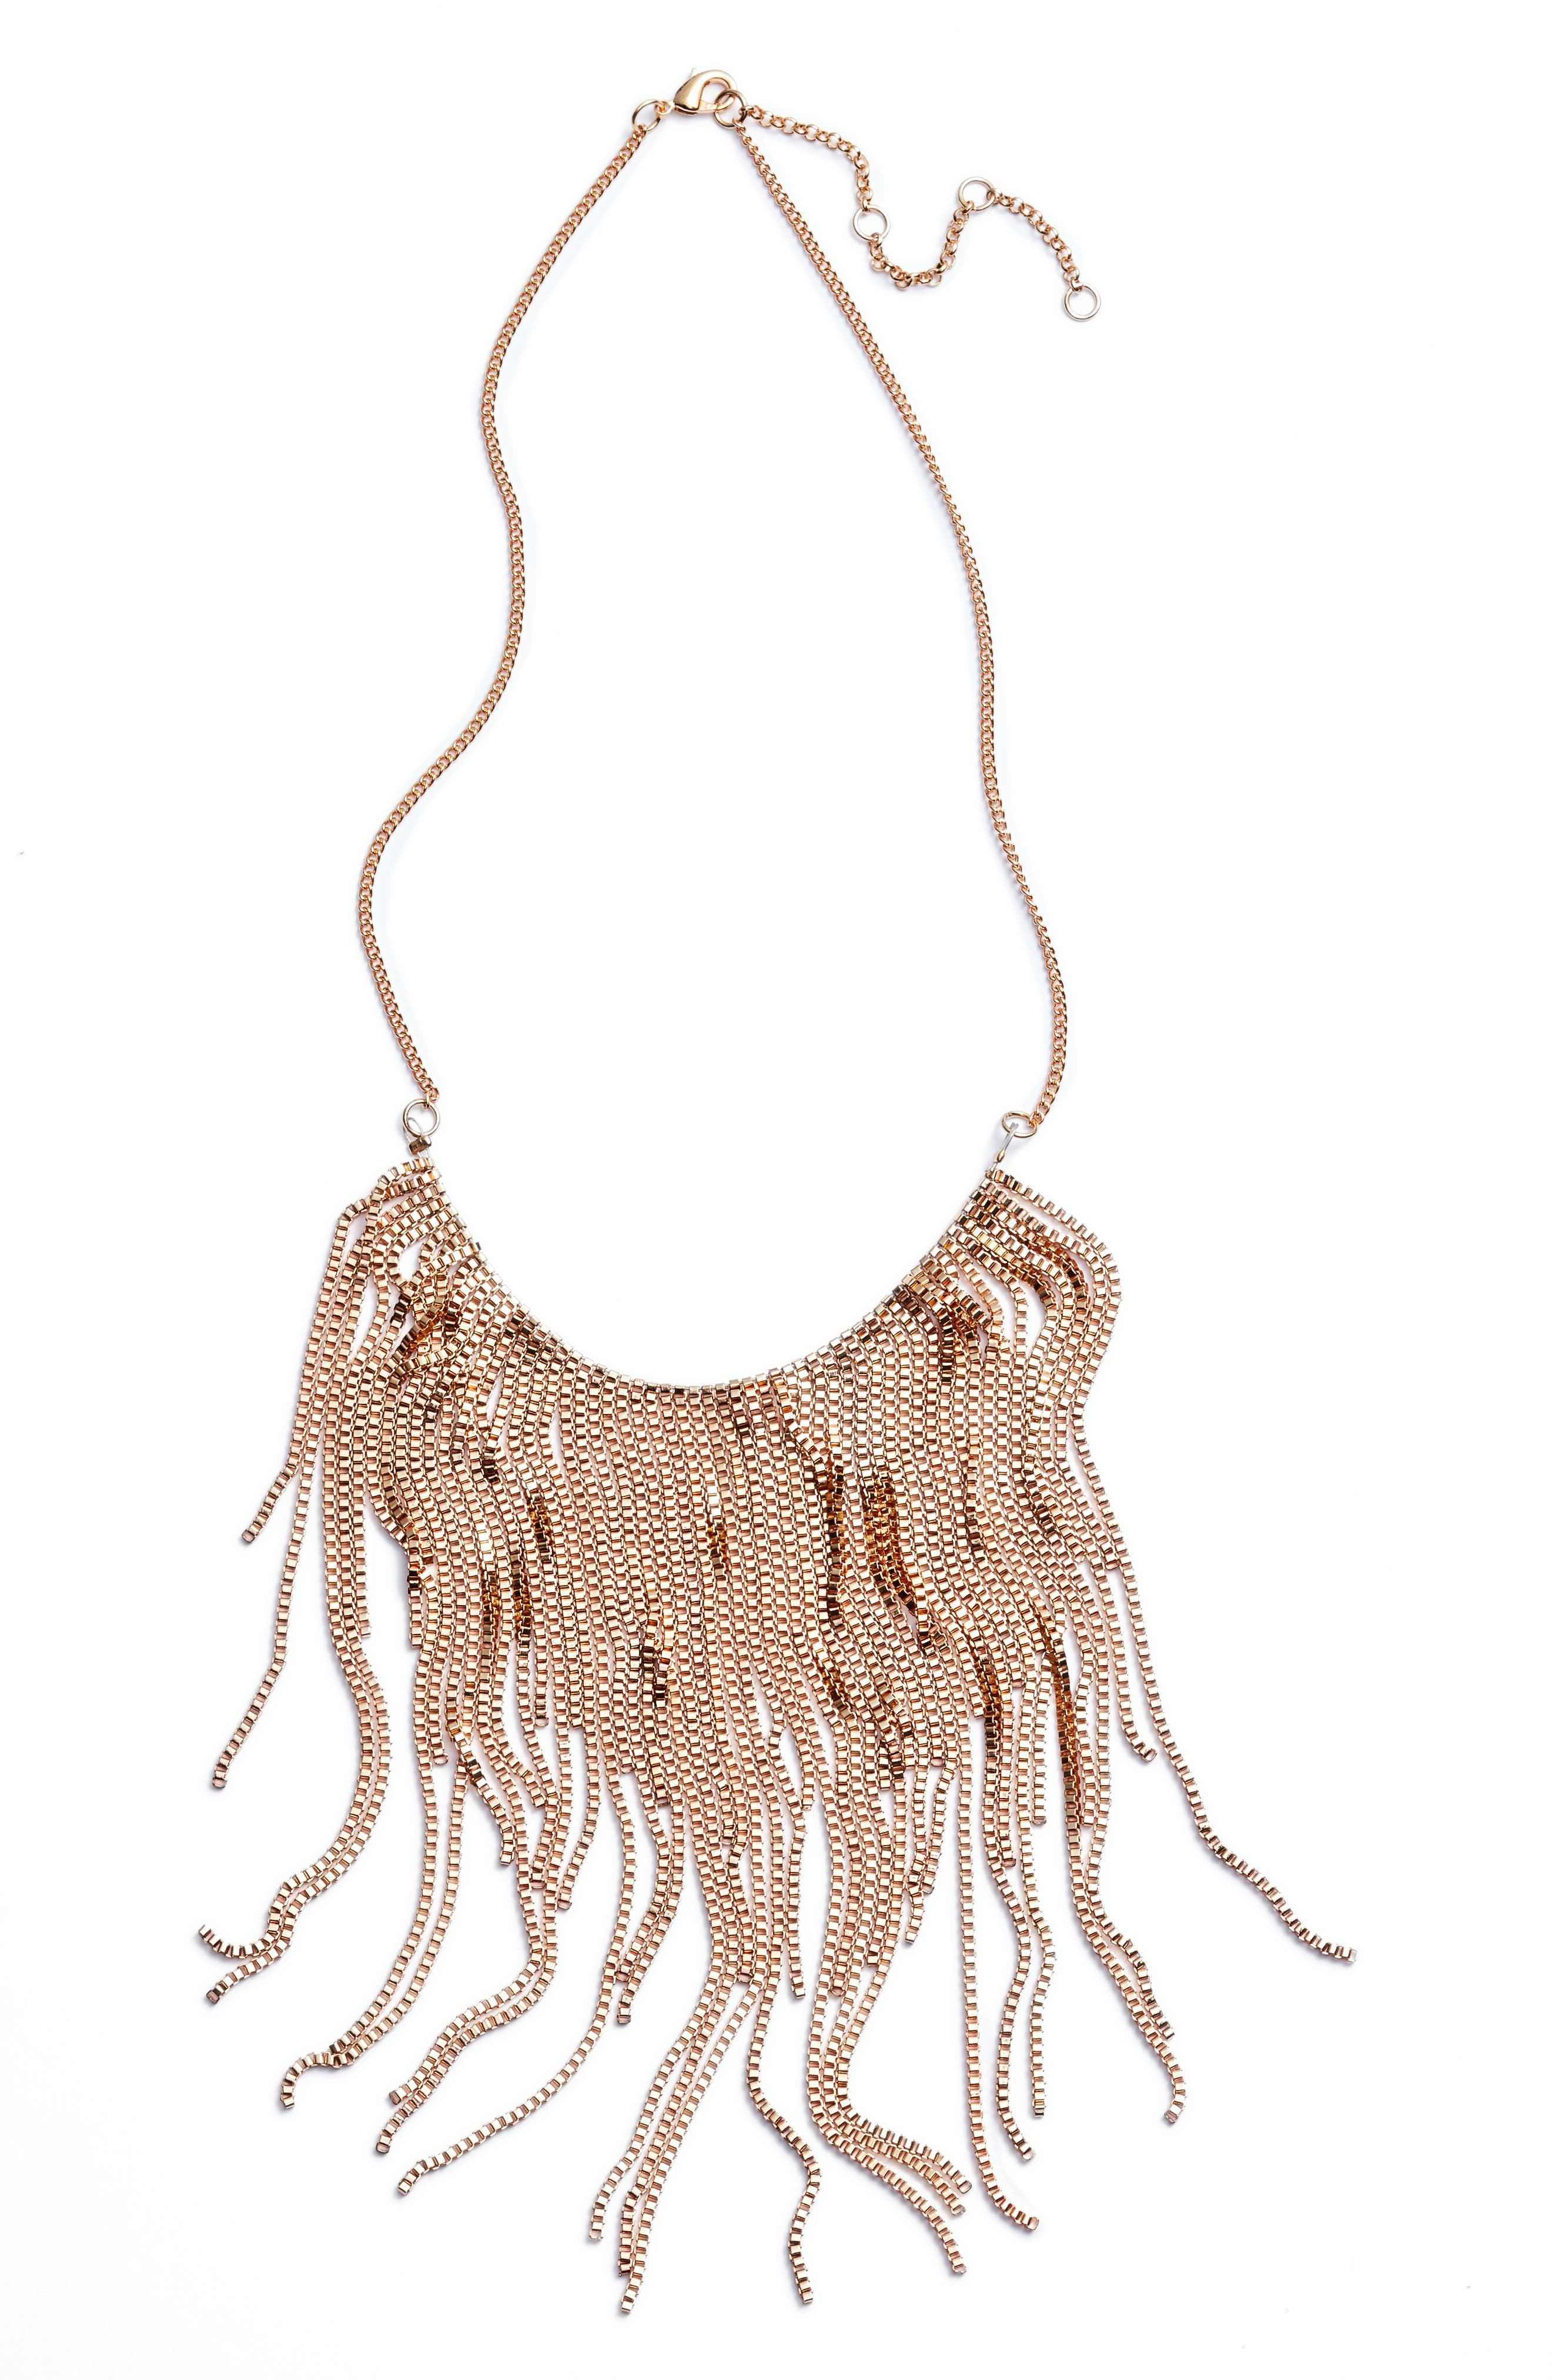 Alternate Image 1 Selected - BP. Chain Fringe Necklace